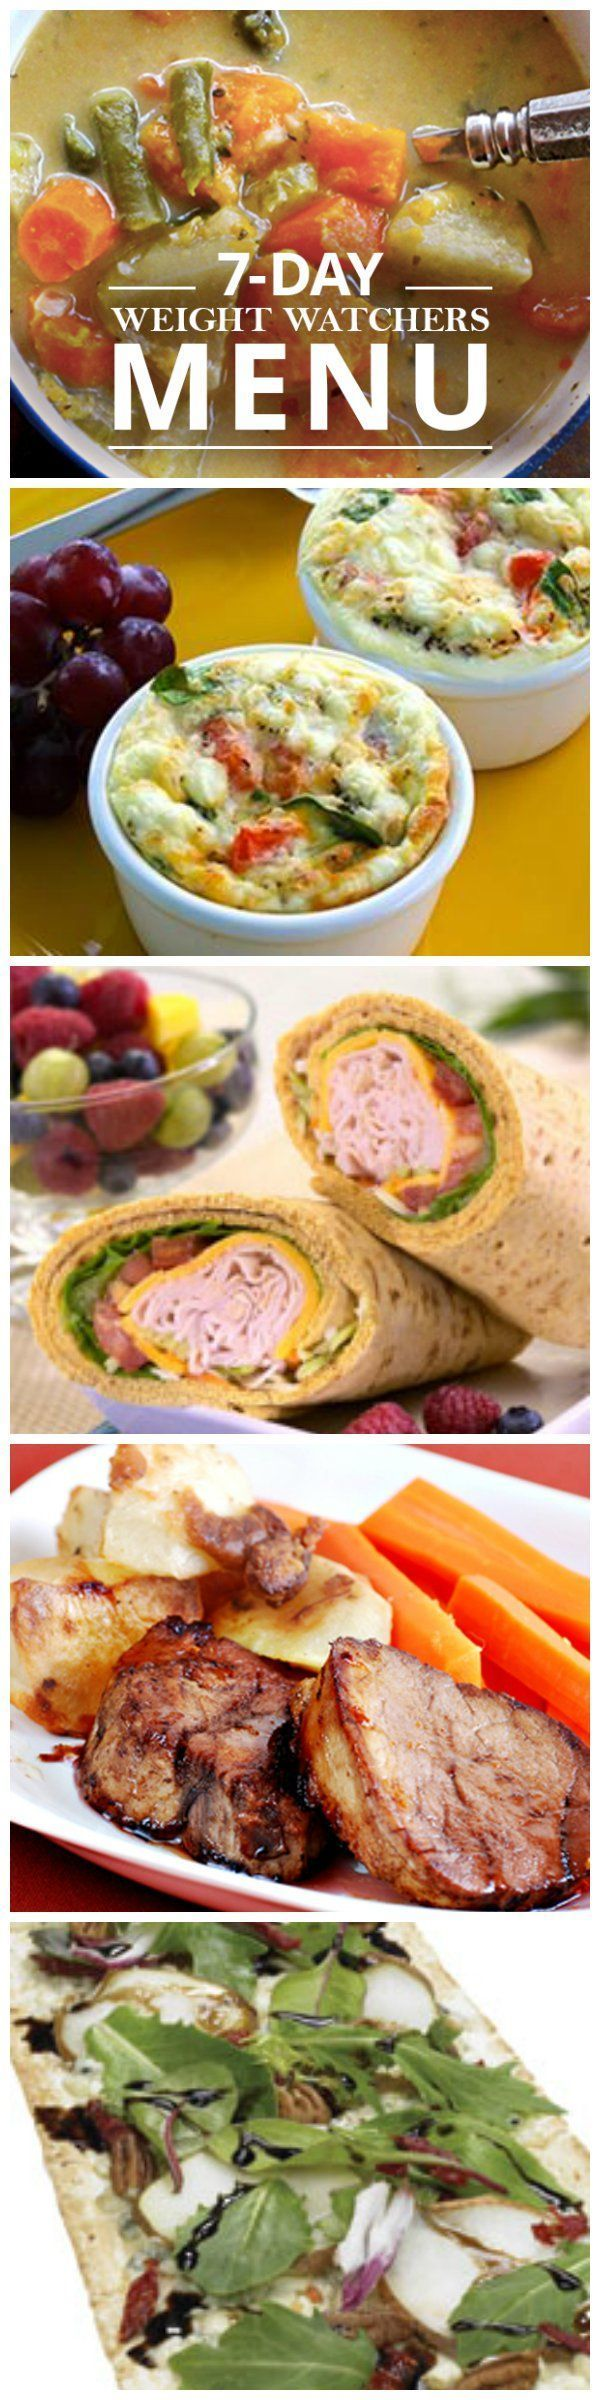 This 7 Day Weight Watchers Menu is AMAZING!  #ww #weightwatchers #summerrecipes